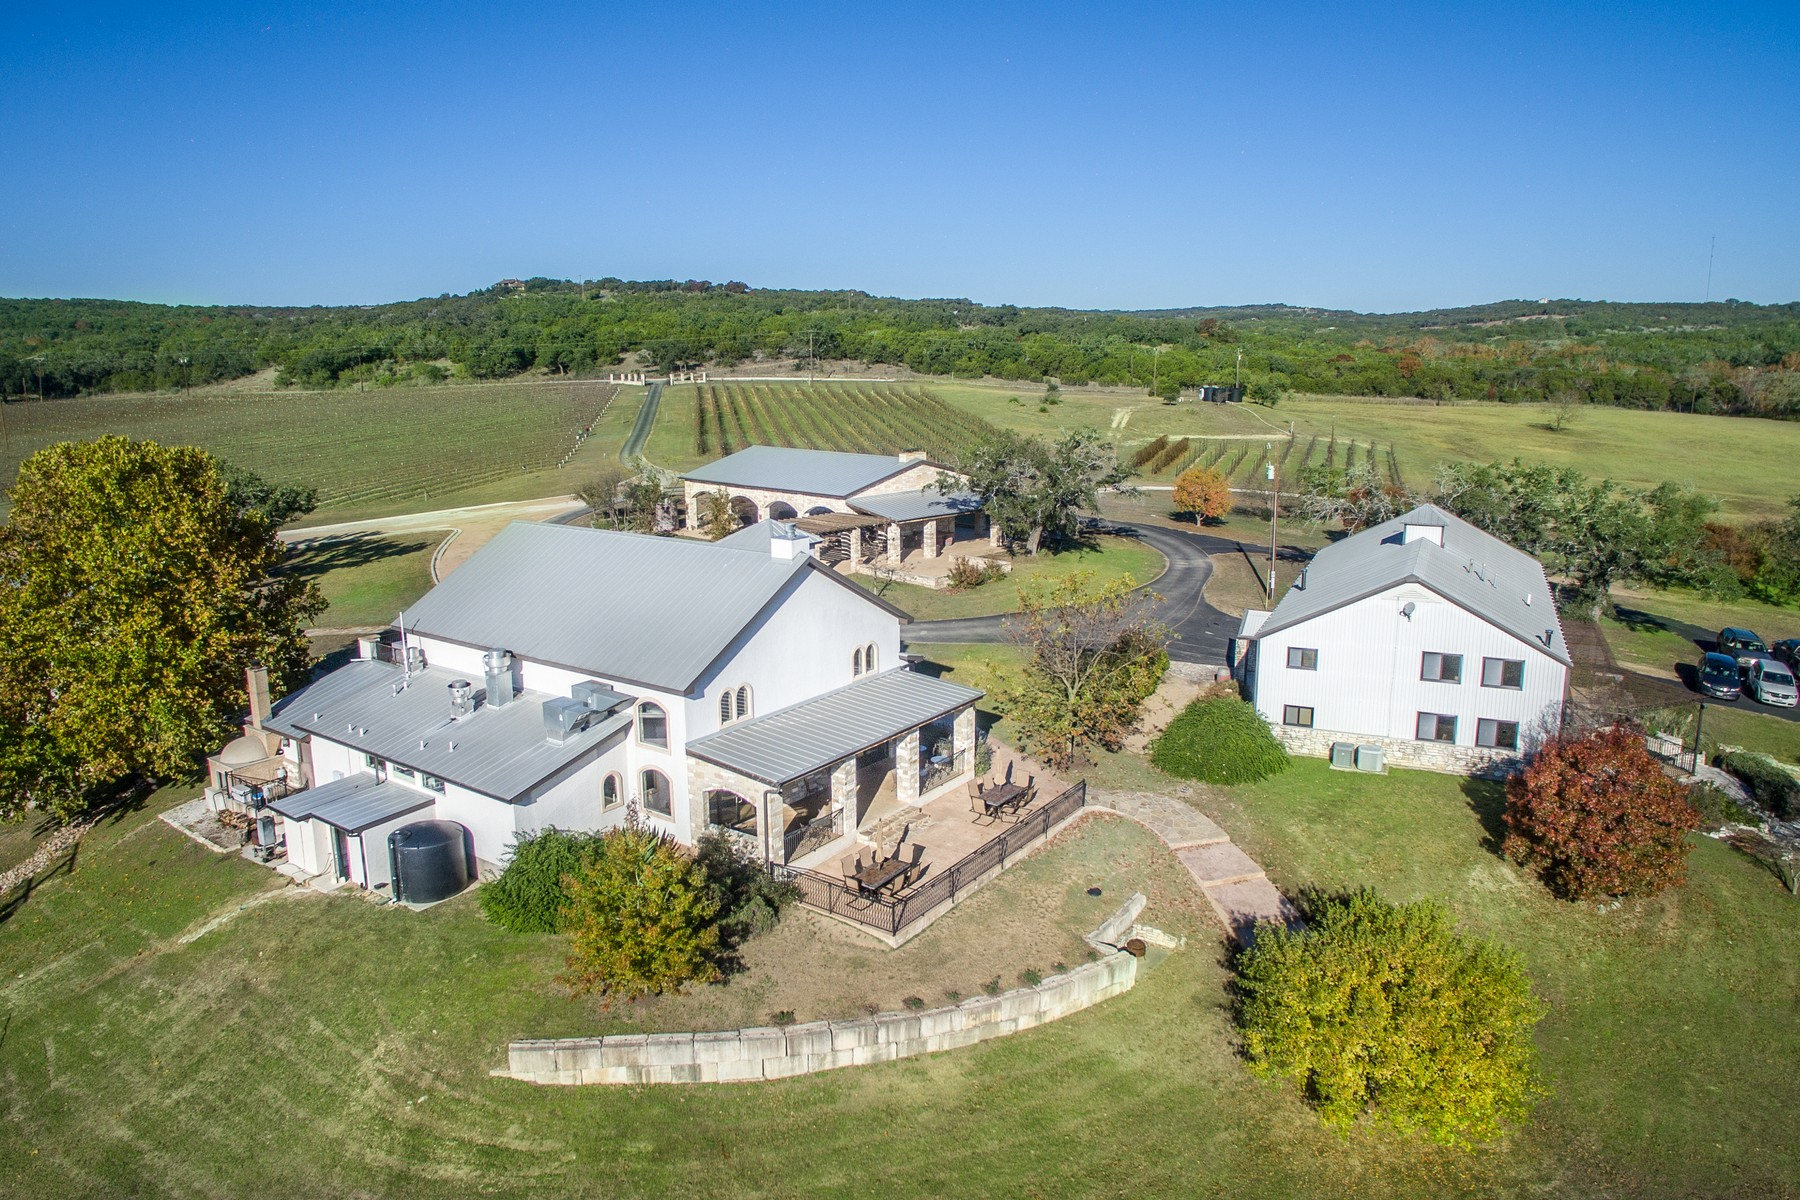 Single Family Home for Sale at The Crown Jewel of Texas Wineries 24912 Singleton Bend East Rd Marble Falls, Texas 78654 United States